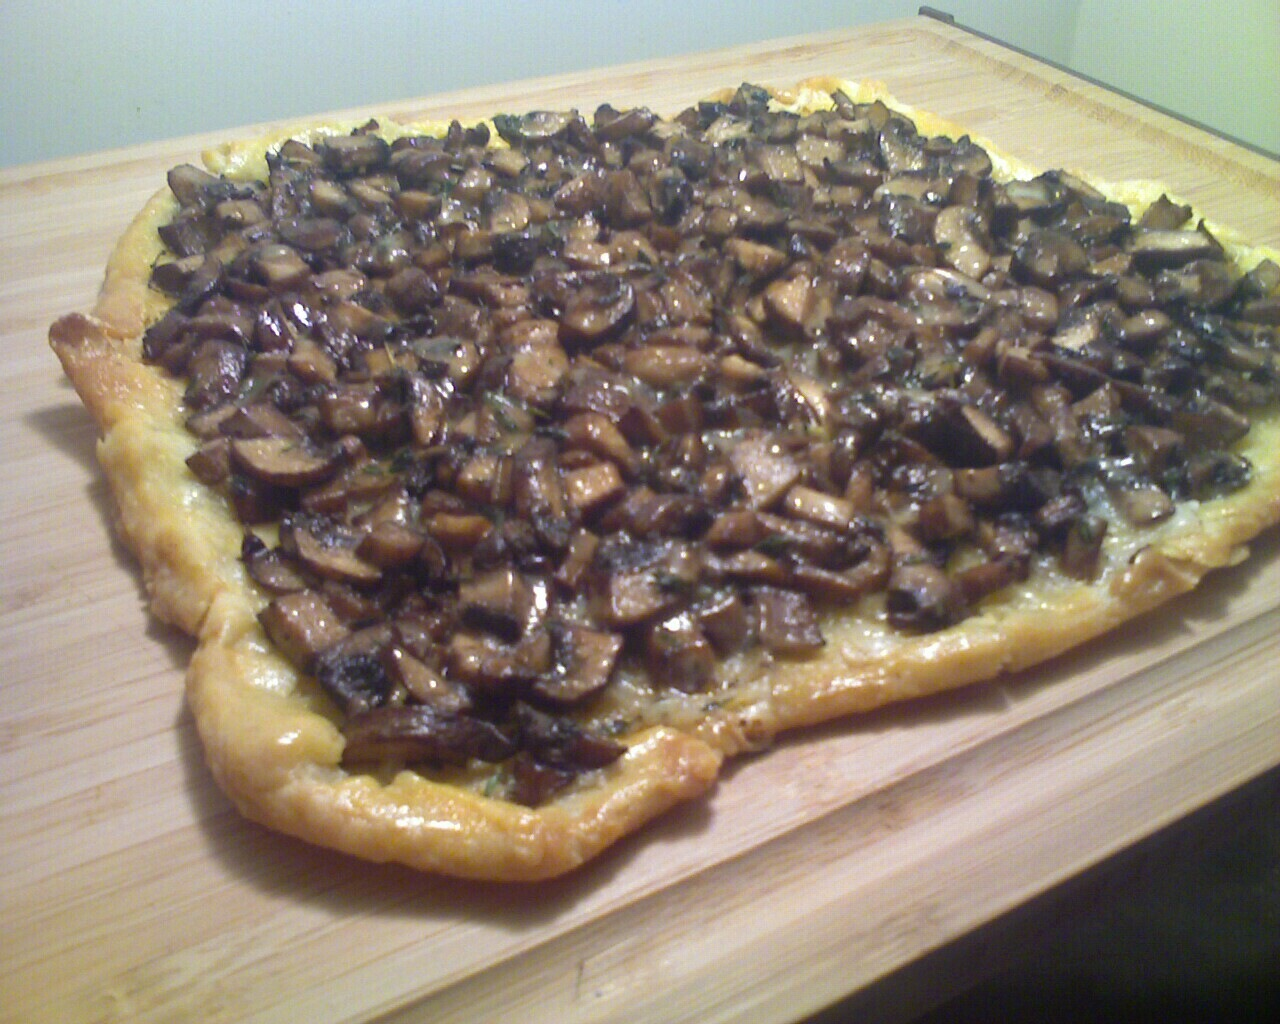 Mushroom Crostata with Roasted Garlic, Taleggio, and Thyme